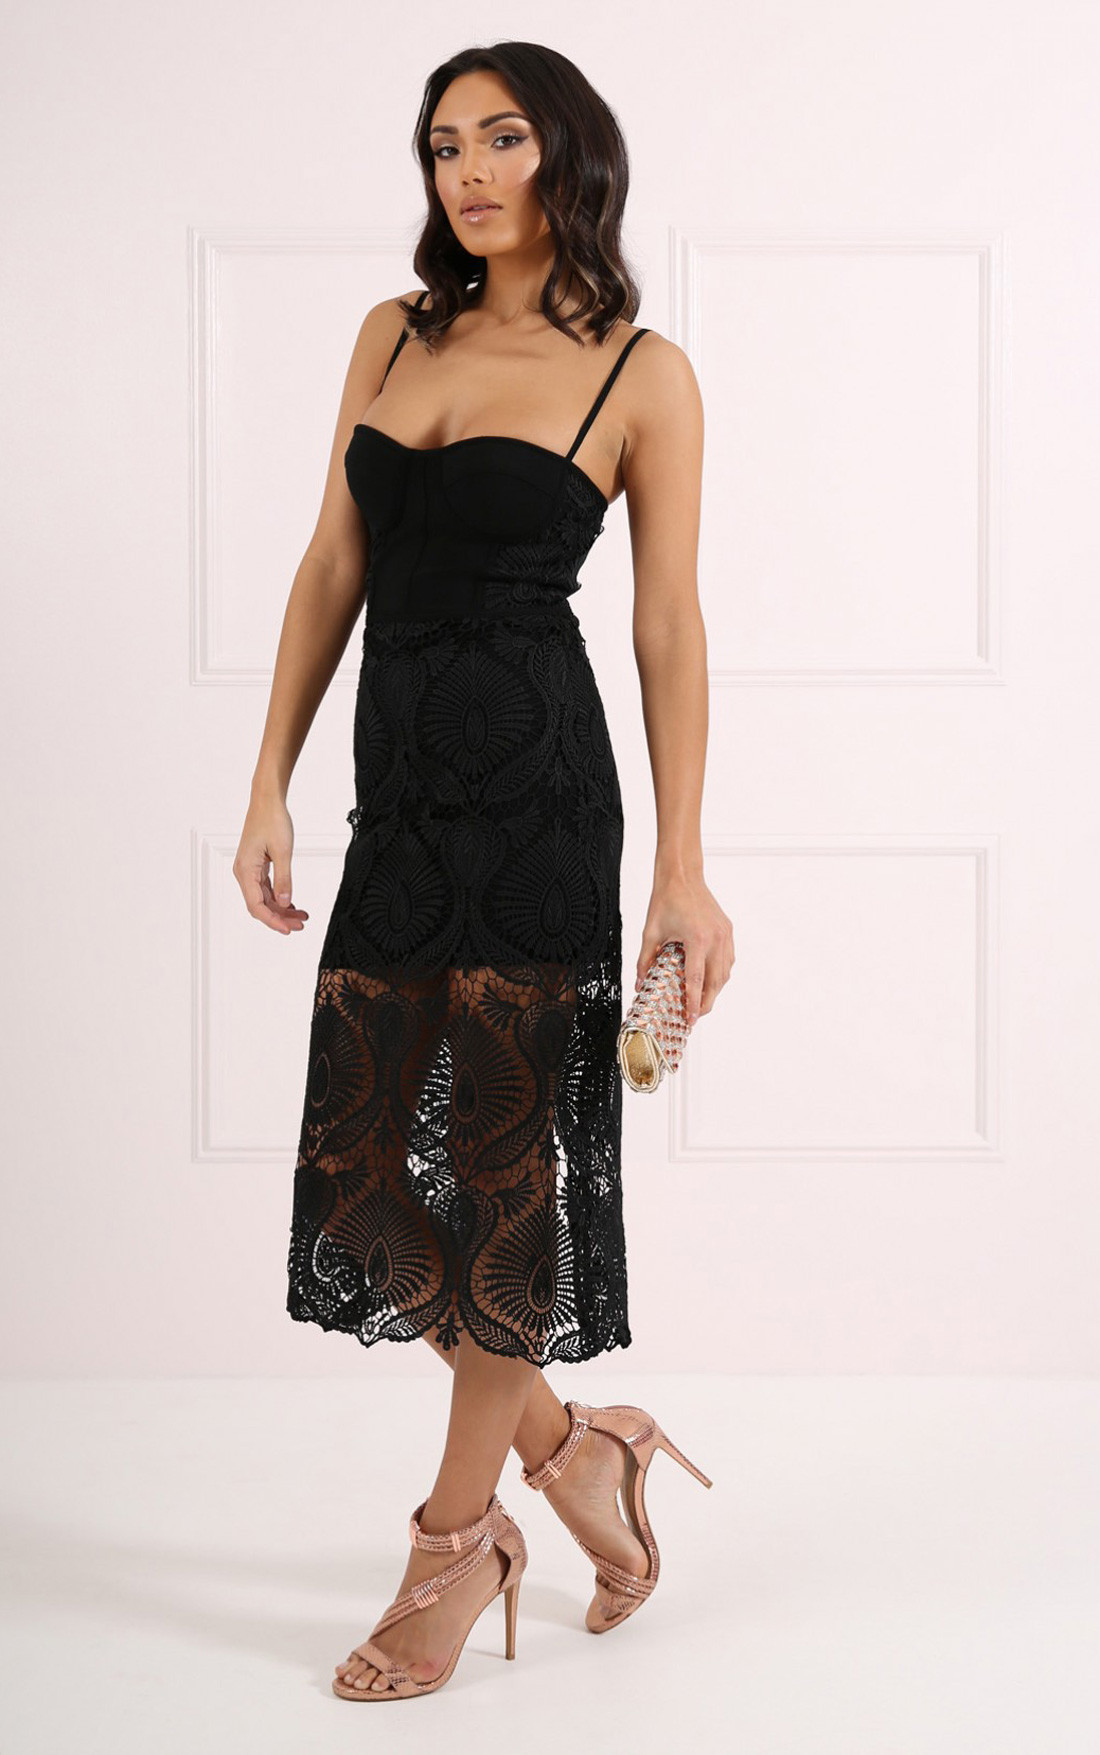 Forever Unique - Tabby Black Dress (CH0616)